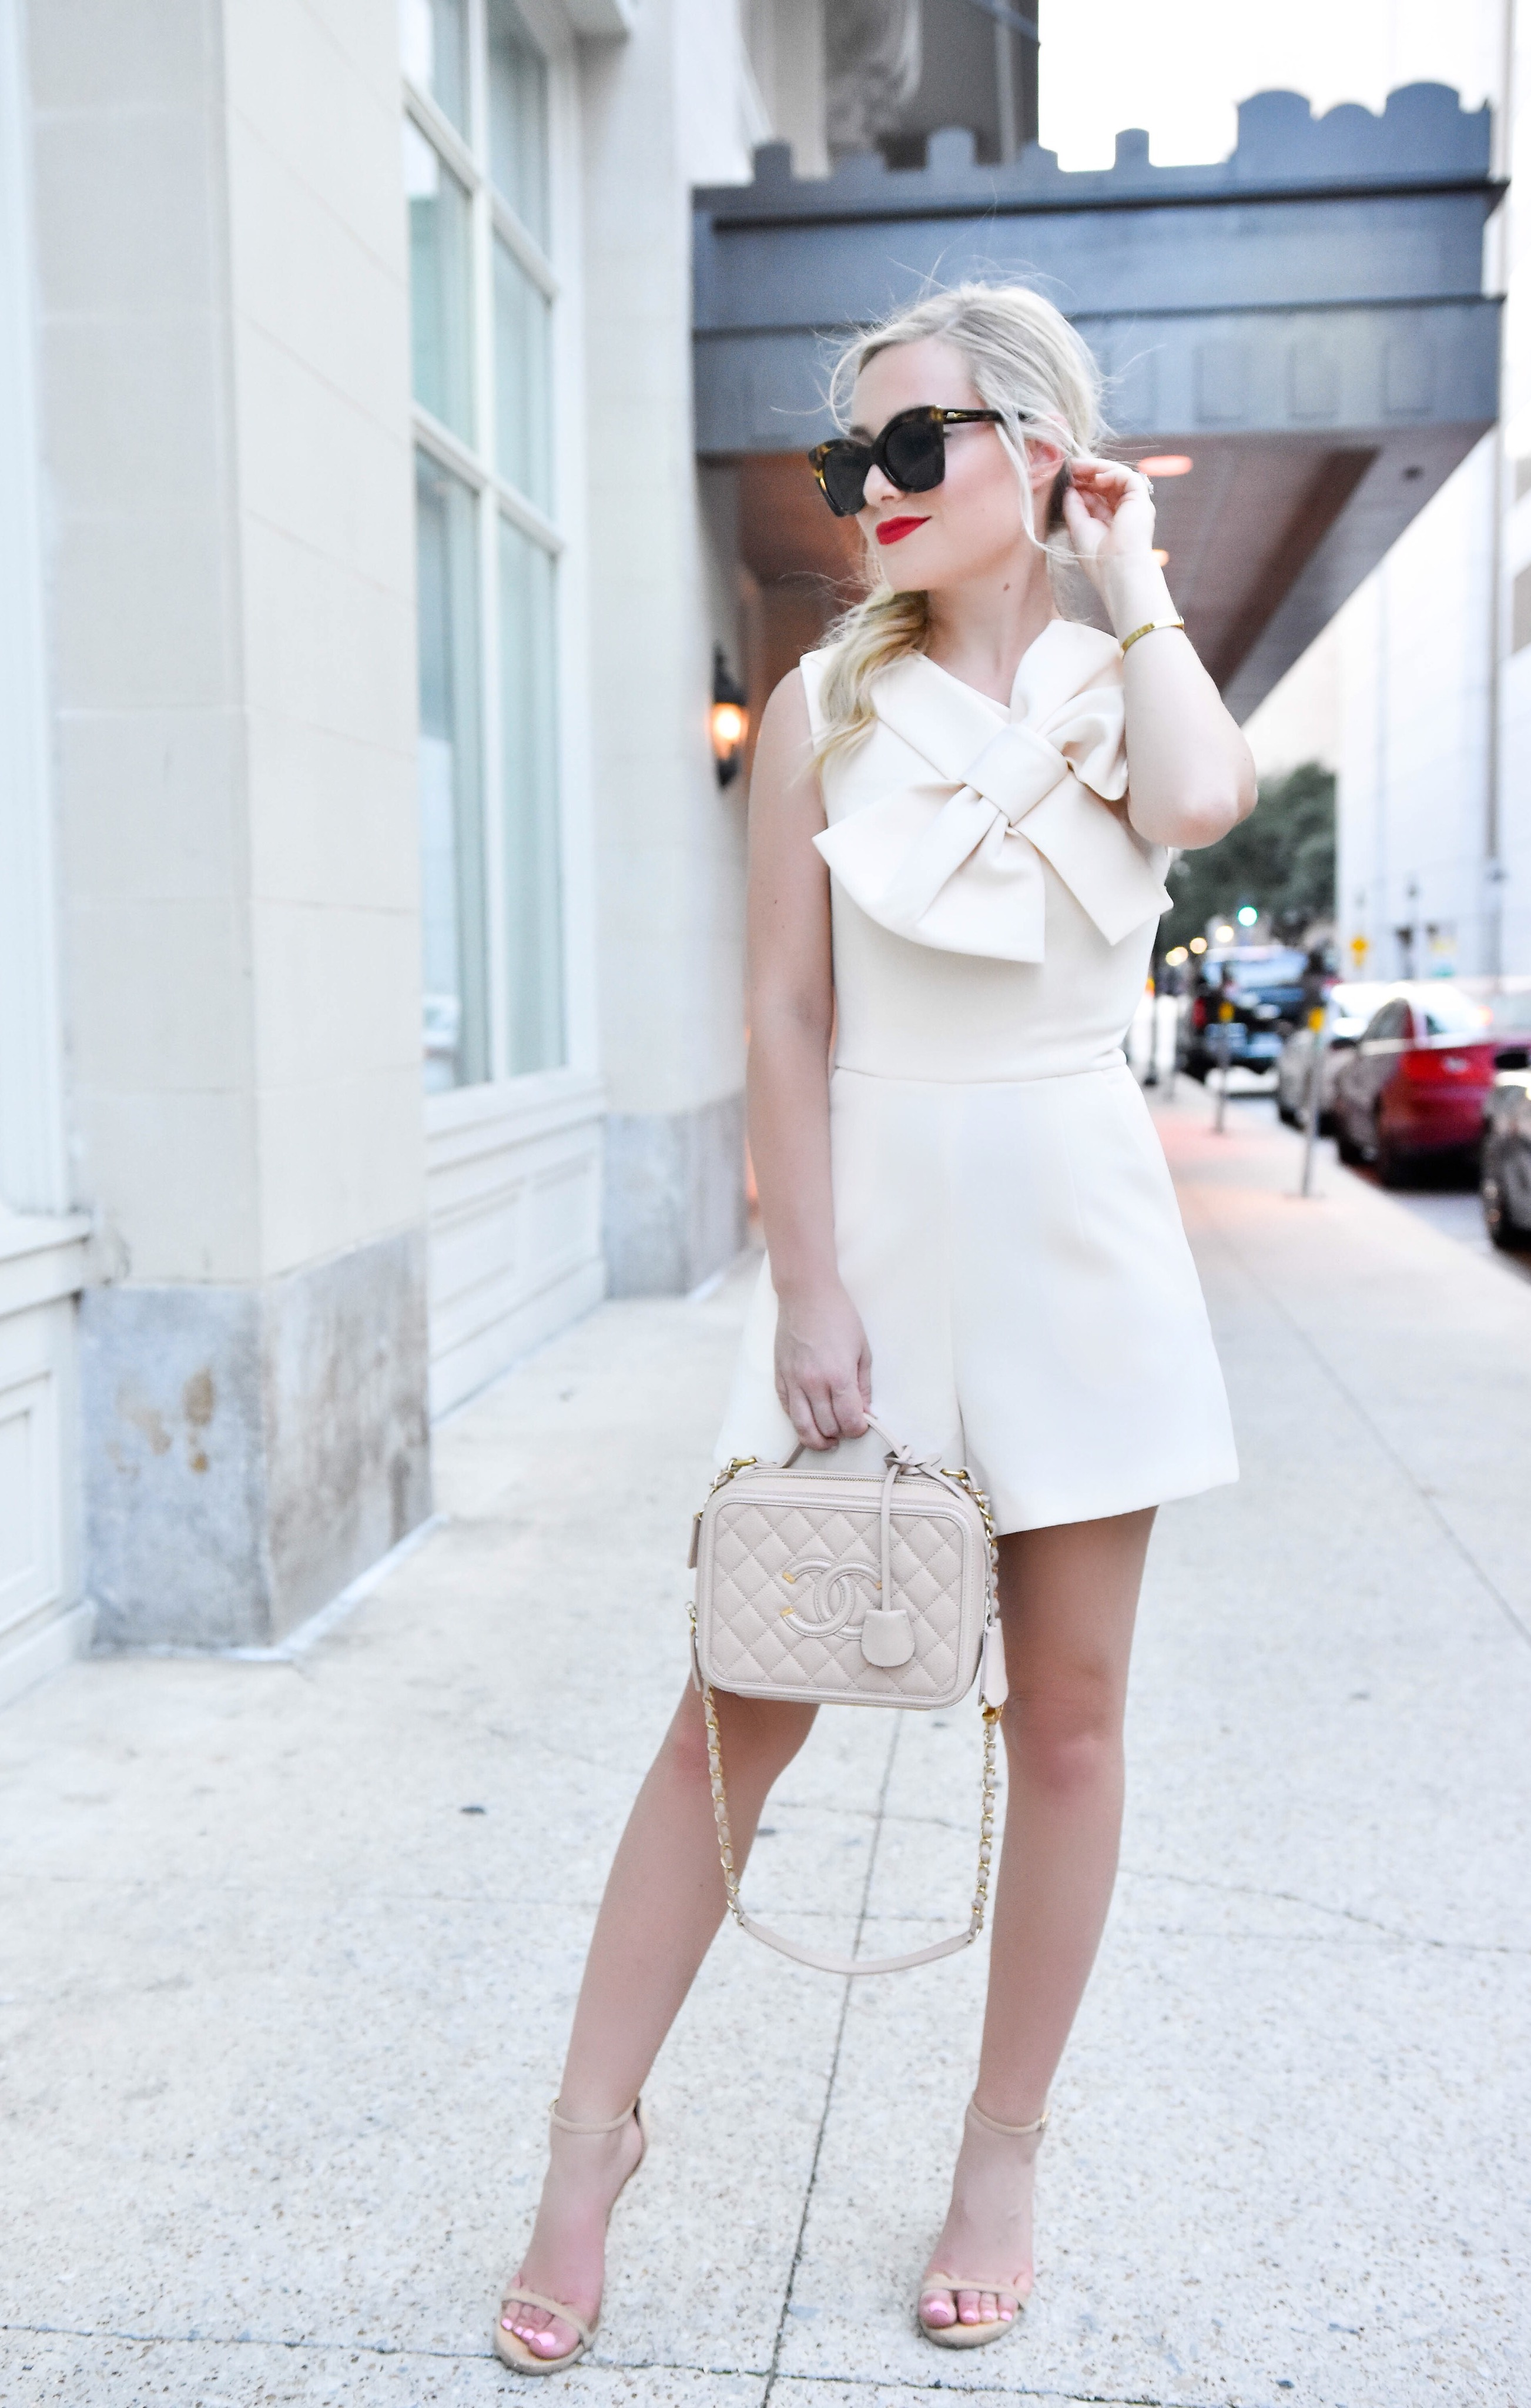 Romper, White Romper, Bow Romper, Bow Front Romper, Chanel Bag, Le Specs Sunglasses, Asos Romper, bridal, engagement outfit, red lipstick